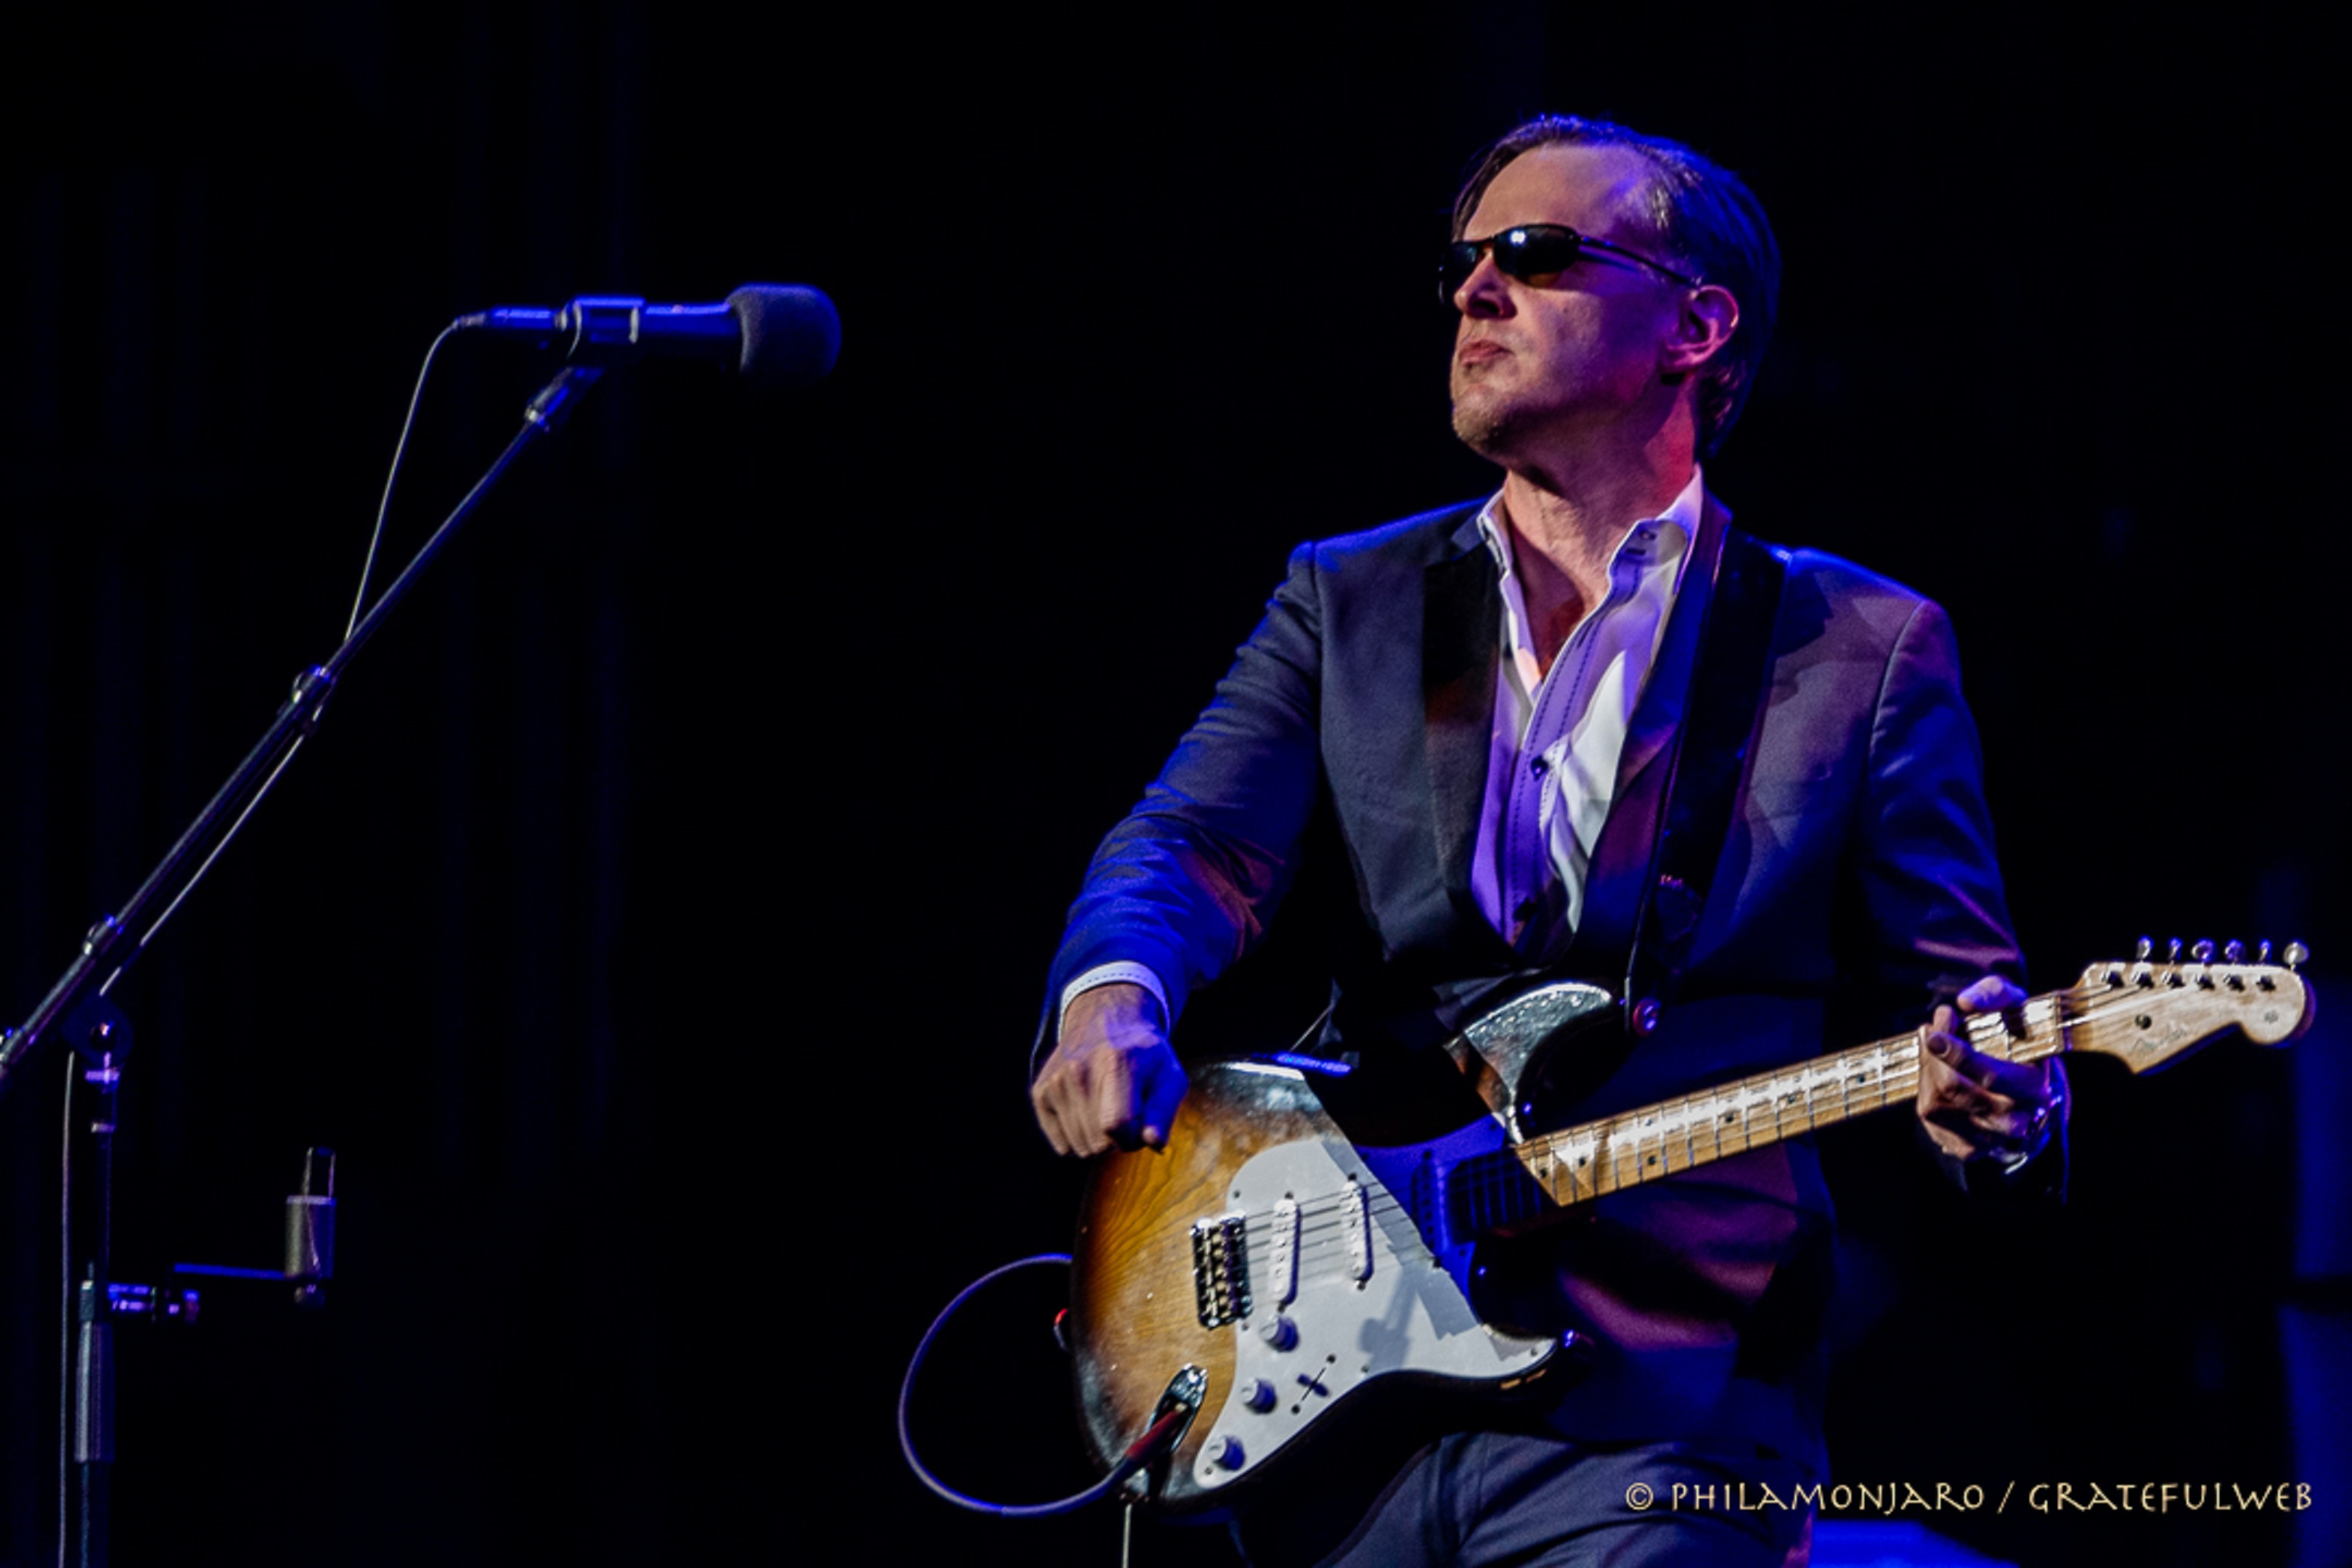 Joe Bonamassa announces 2020 spring tour dates